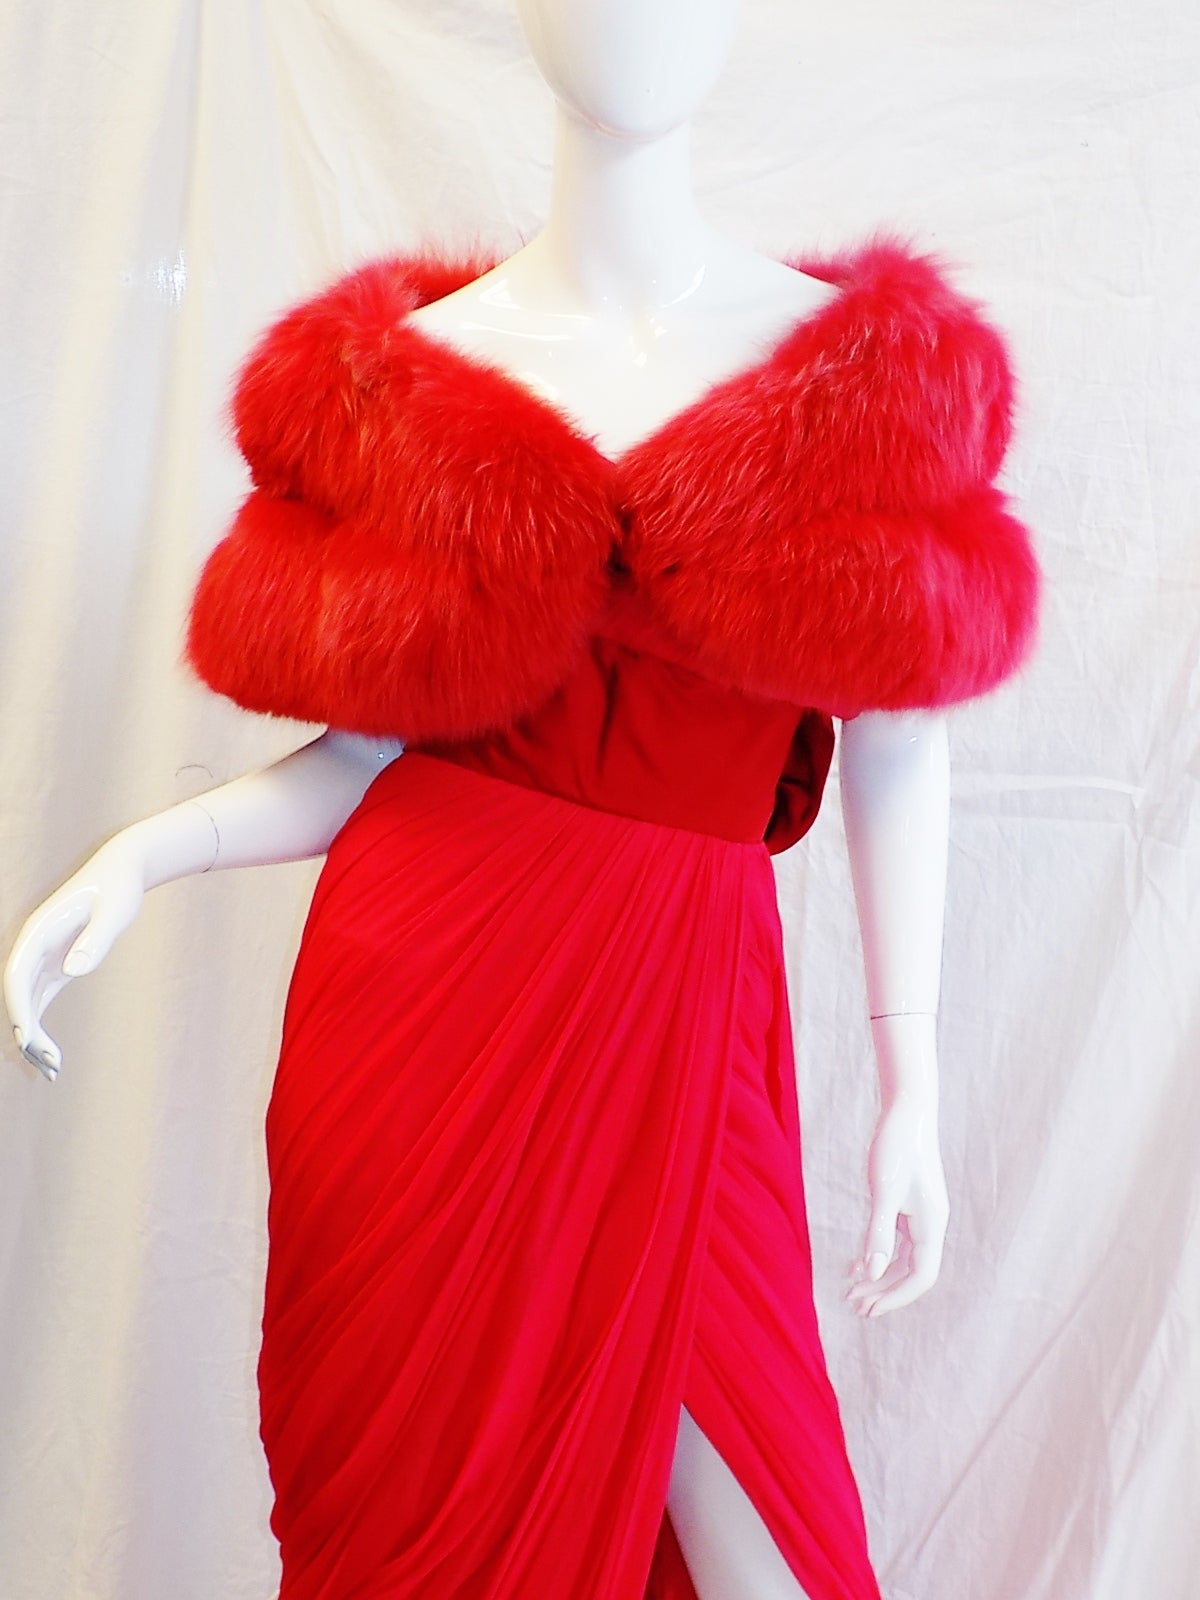 Iconic Jean Dessès Red draped gown with Fox fur stole 1950's 3